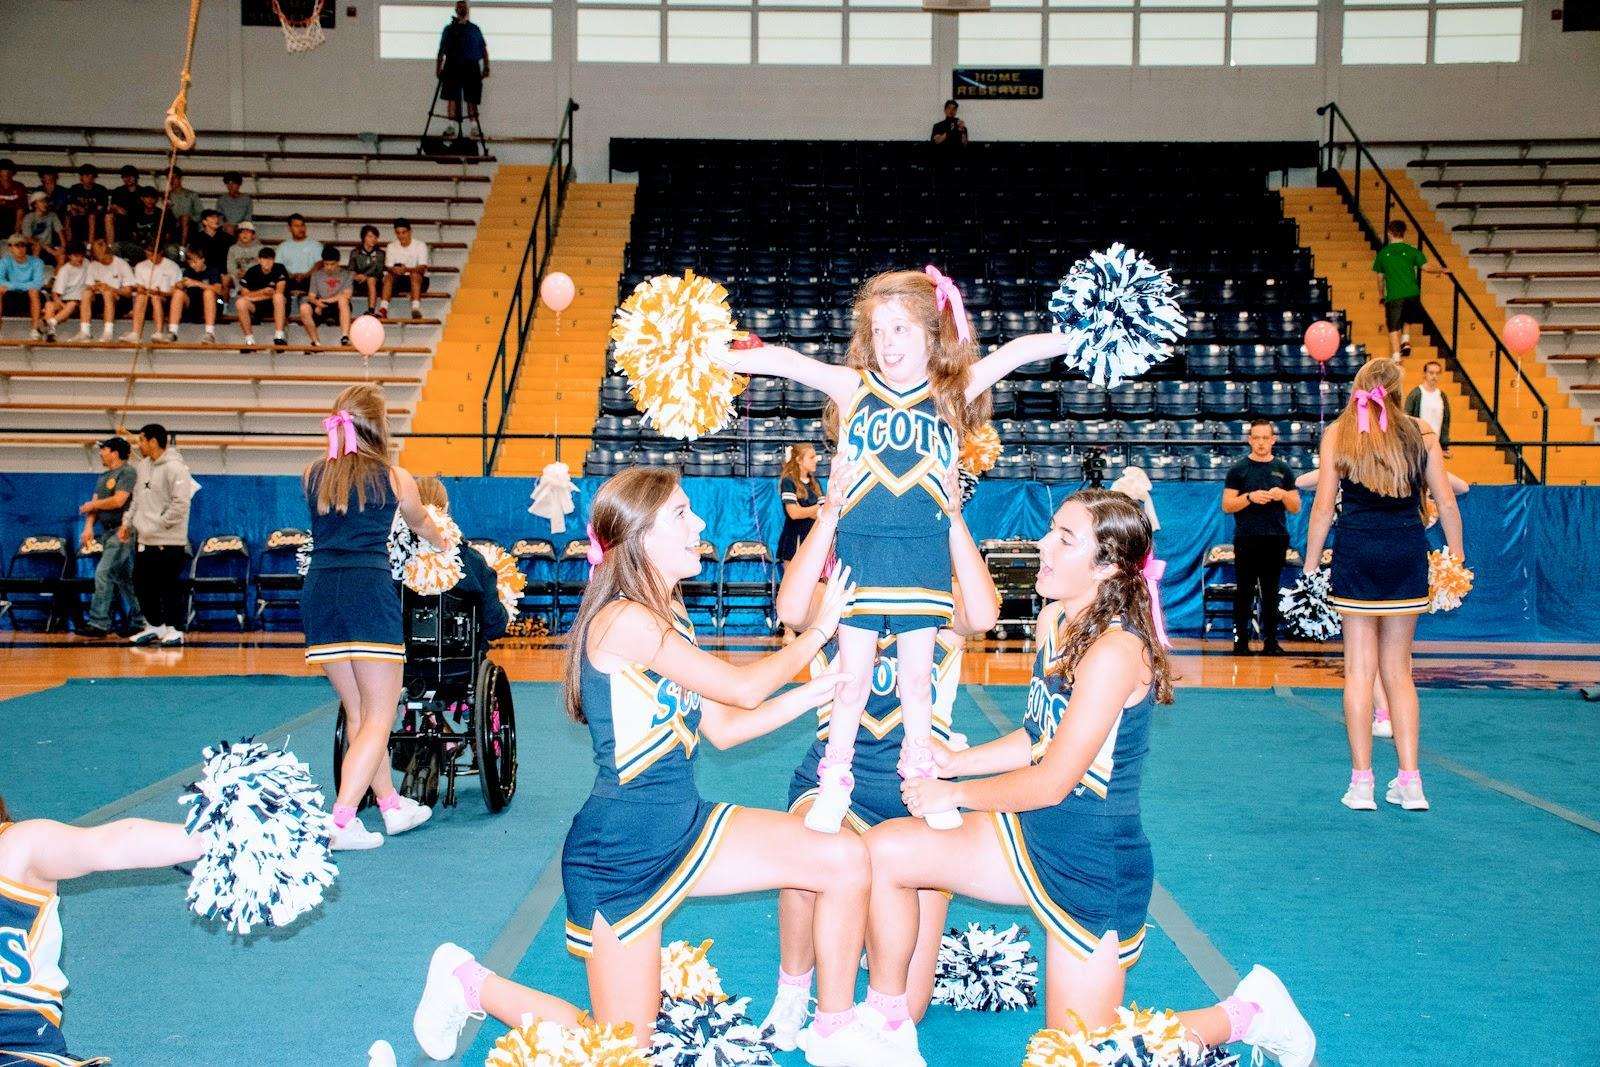 Sparkling Scots Cheerleaders